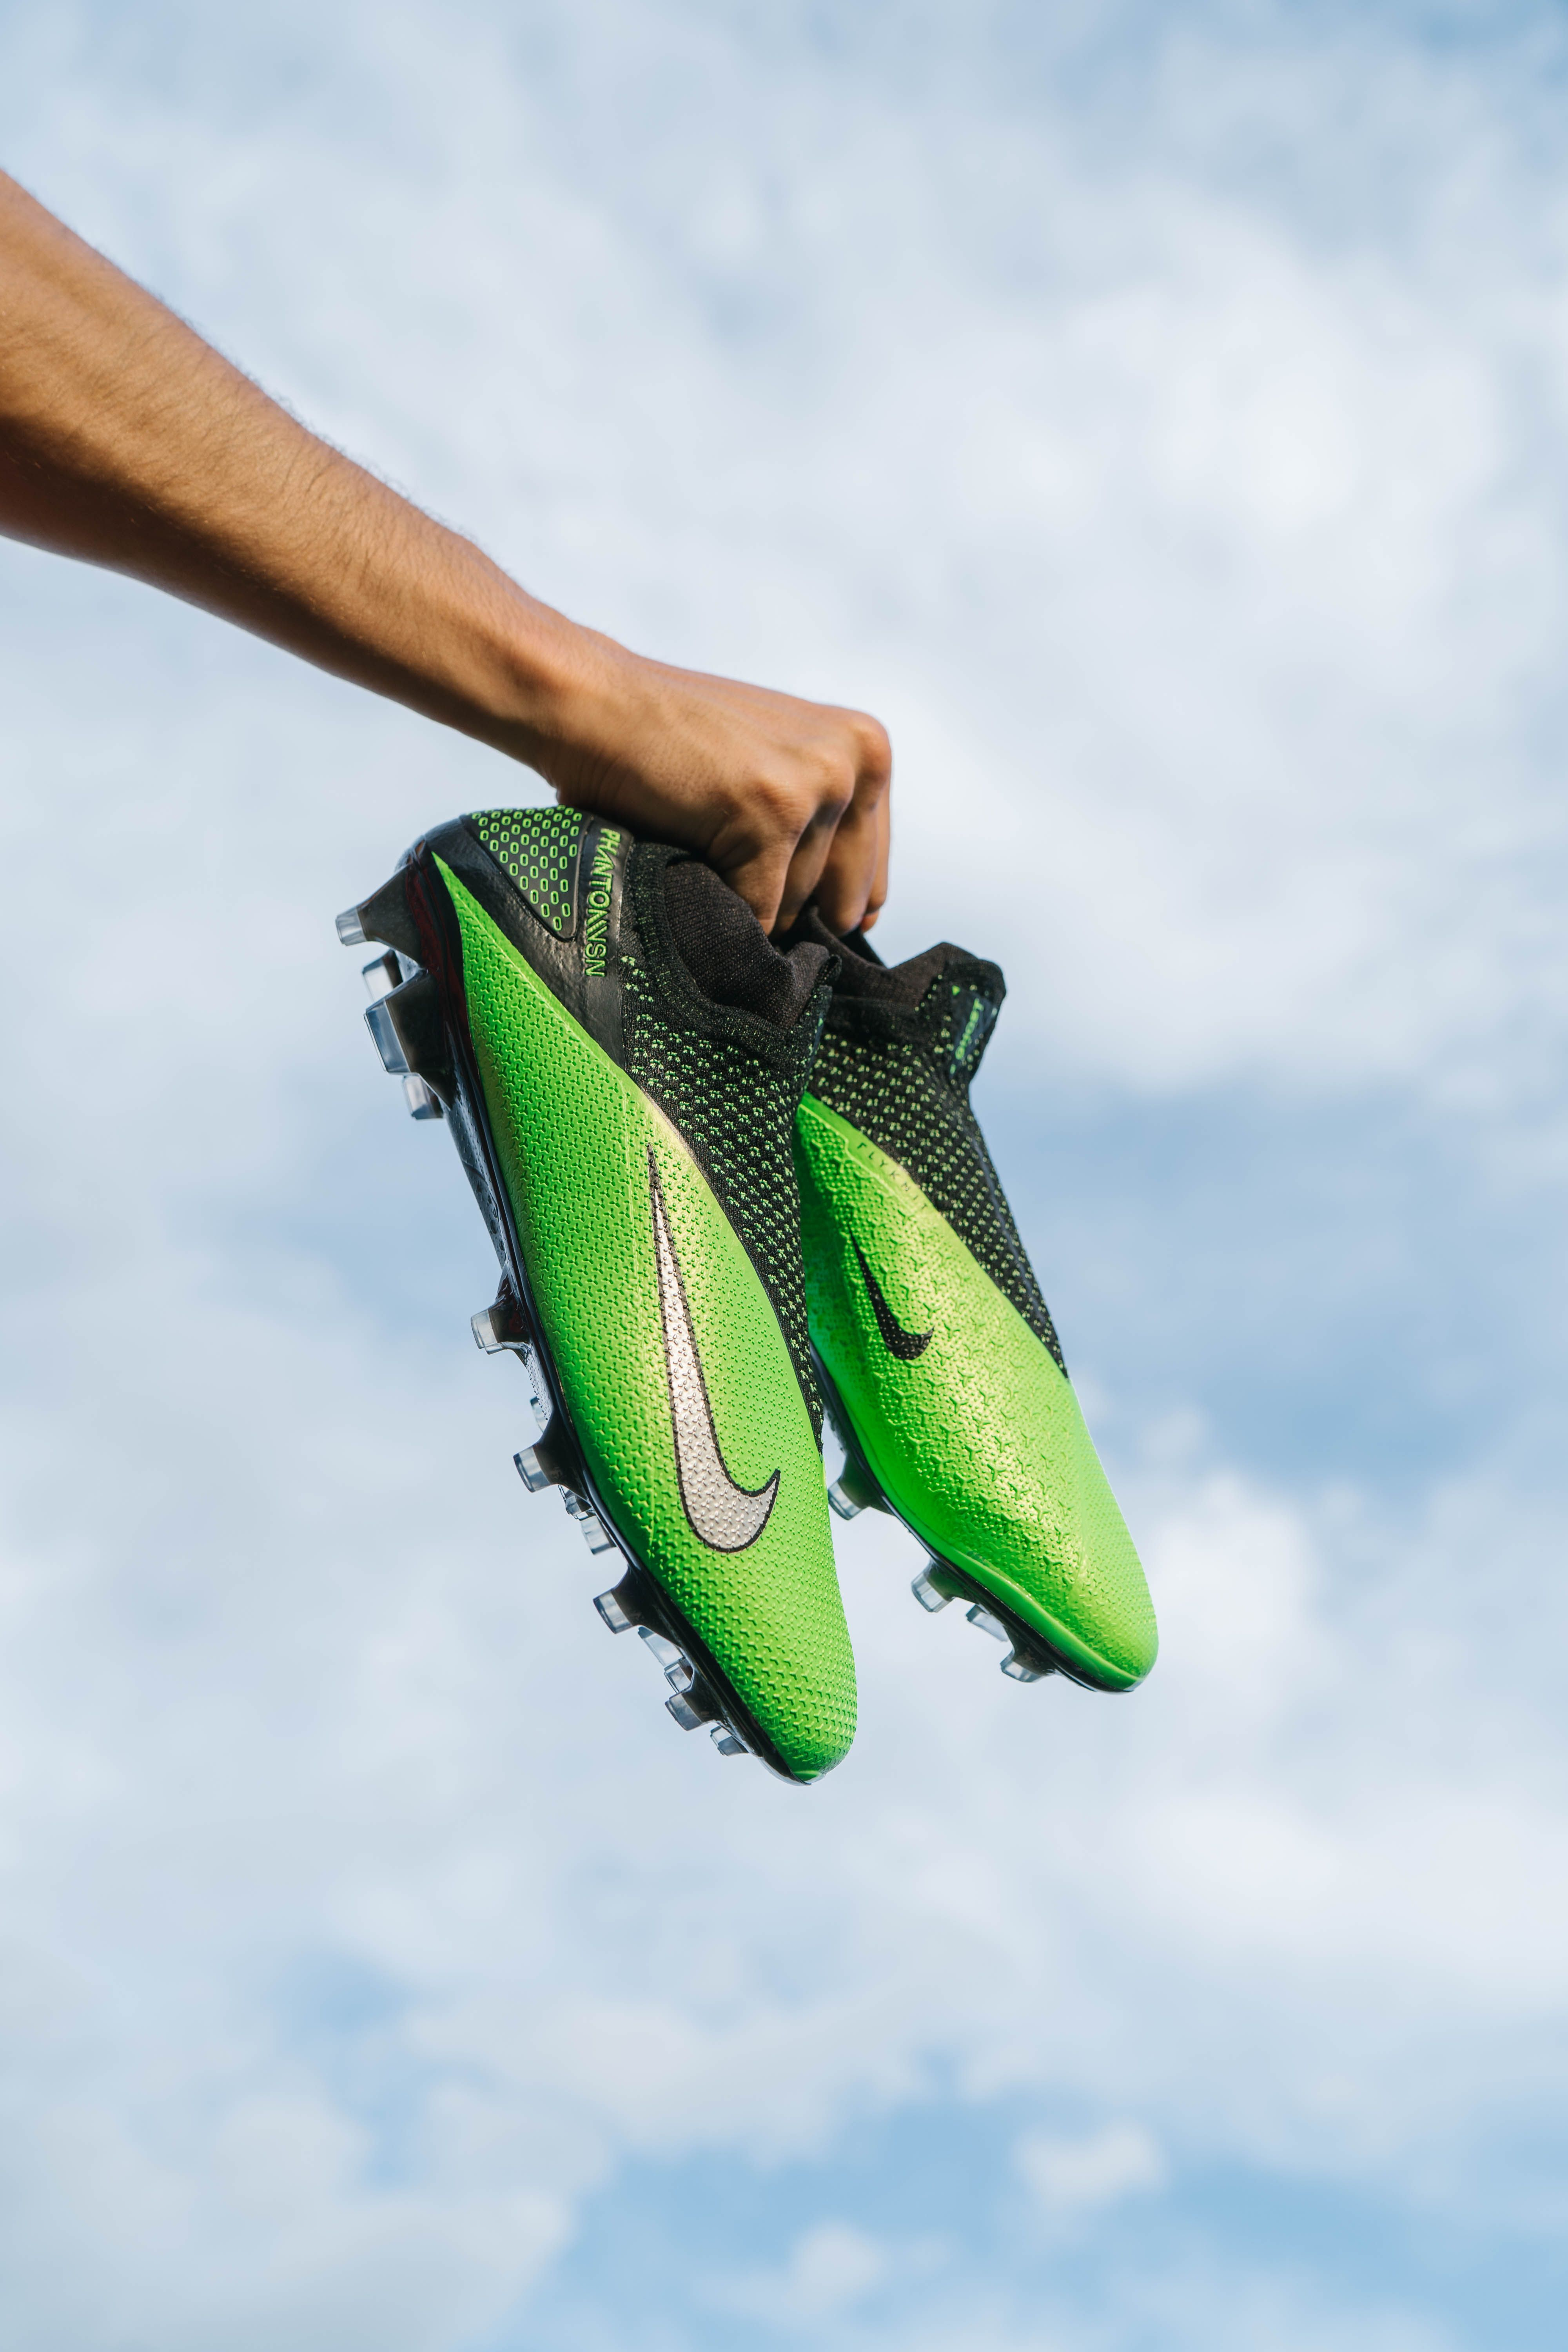 Nike Future Lab Ii Phantom Vision 2 In 2020 Cleats Soccer Cleats Soccer